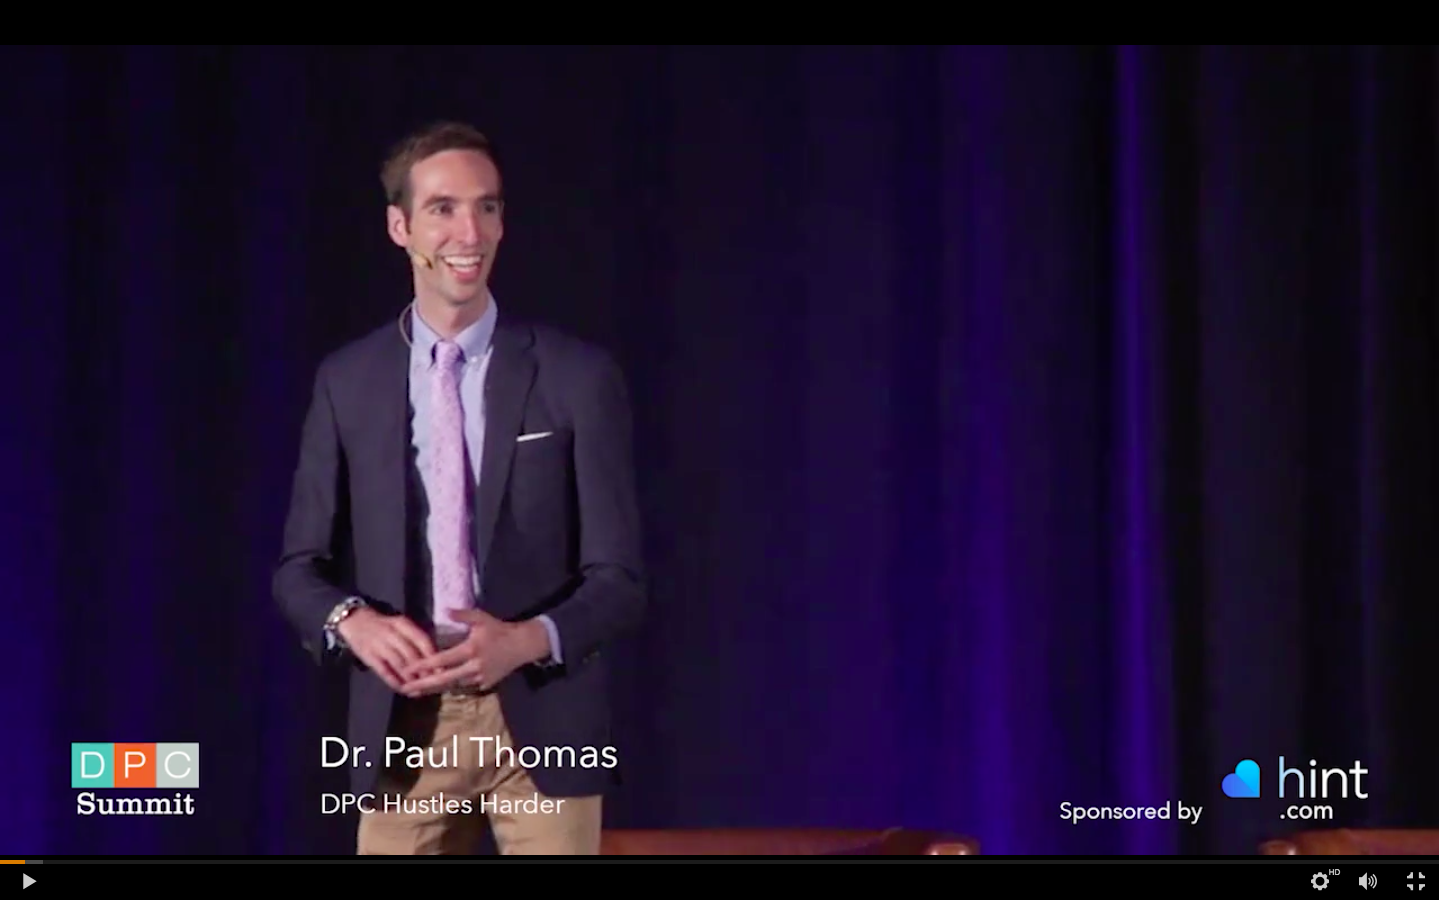 Here I am speaking at the American Academy of Family Physicians DPC Summit in 2018